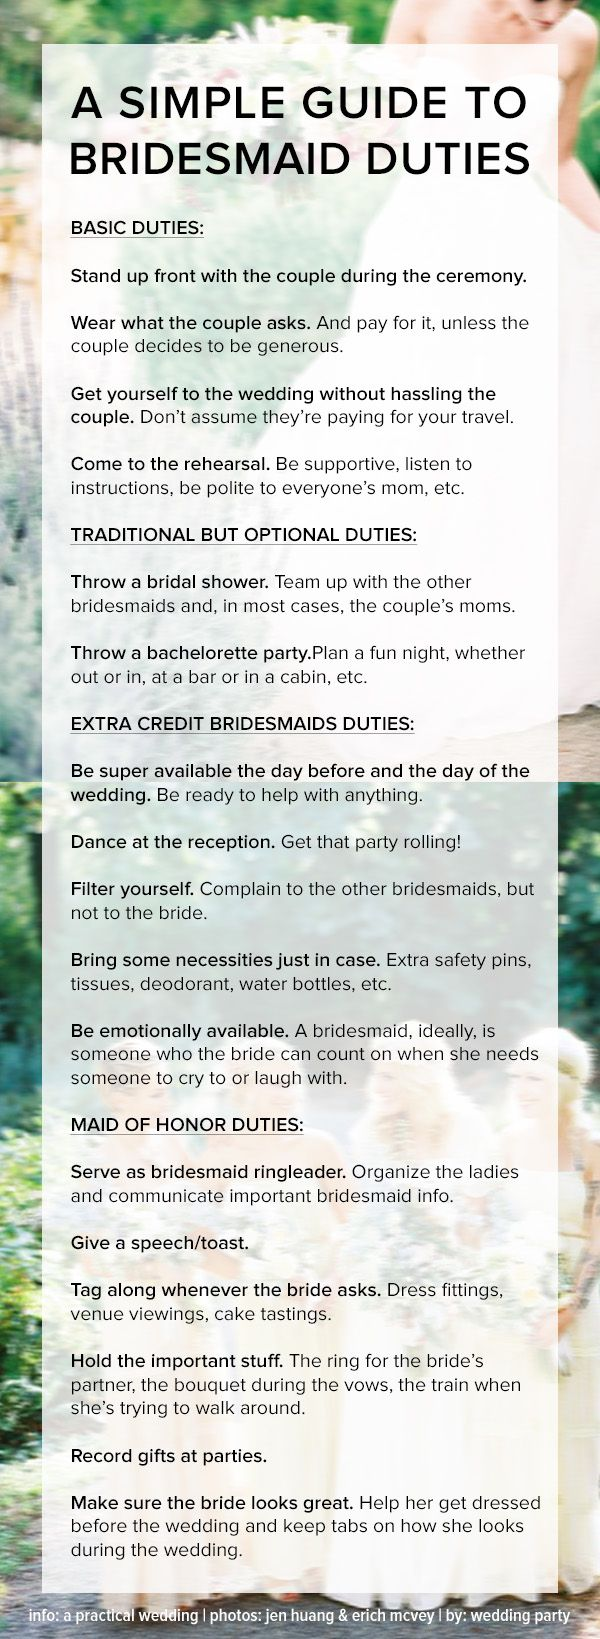 A simple guide to bridesmaids duties and etiquette. Tips for basic, MOH, and all-start bridesmaid responsibilities! Pin now, read later.